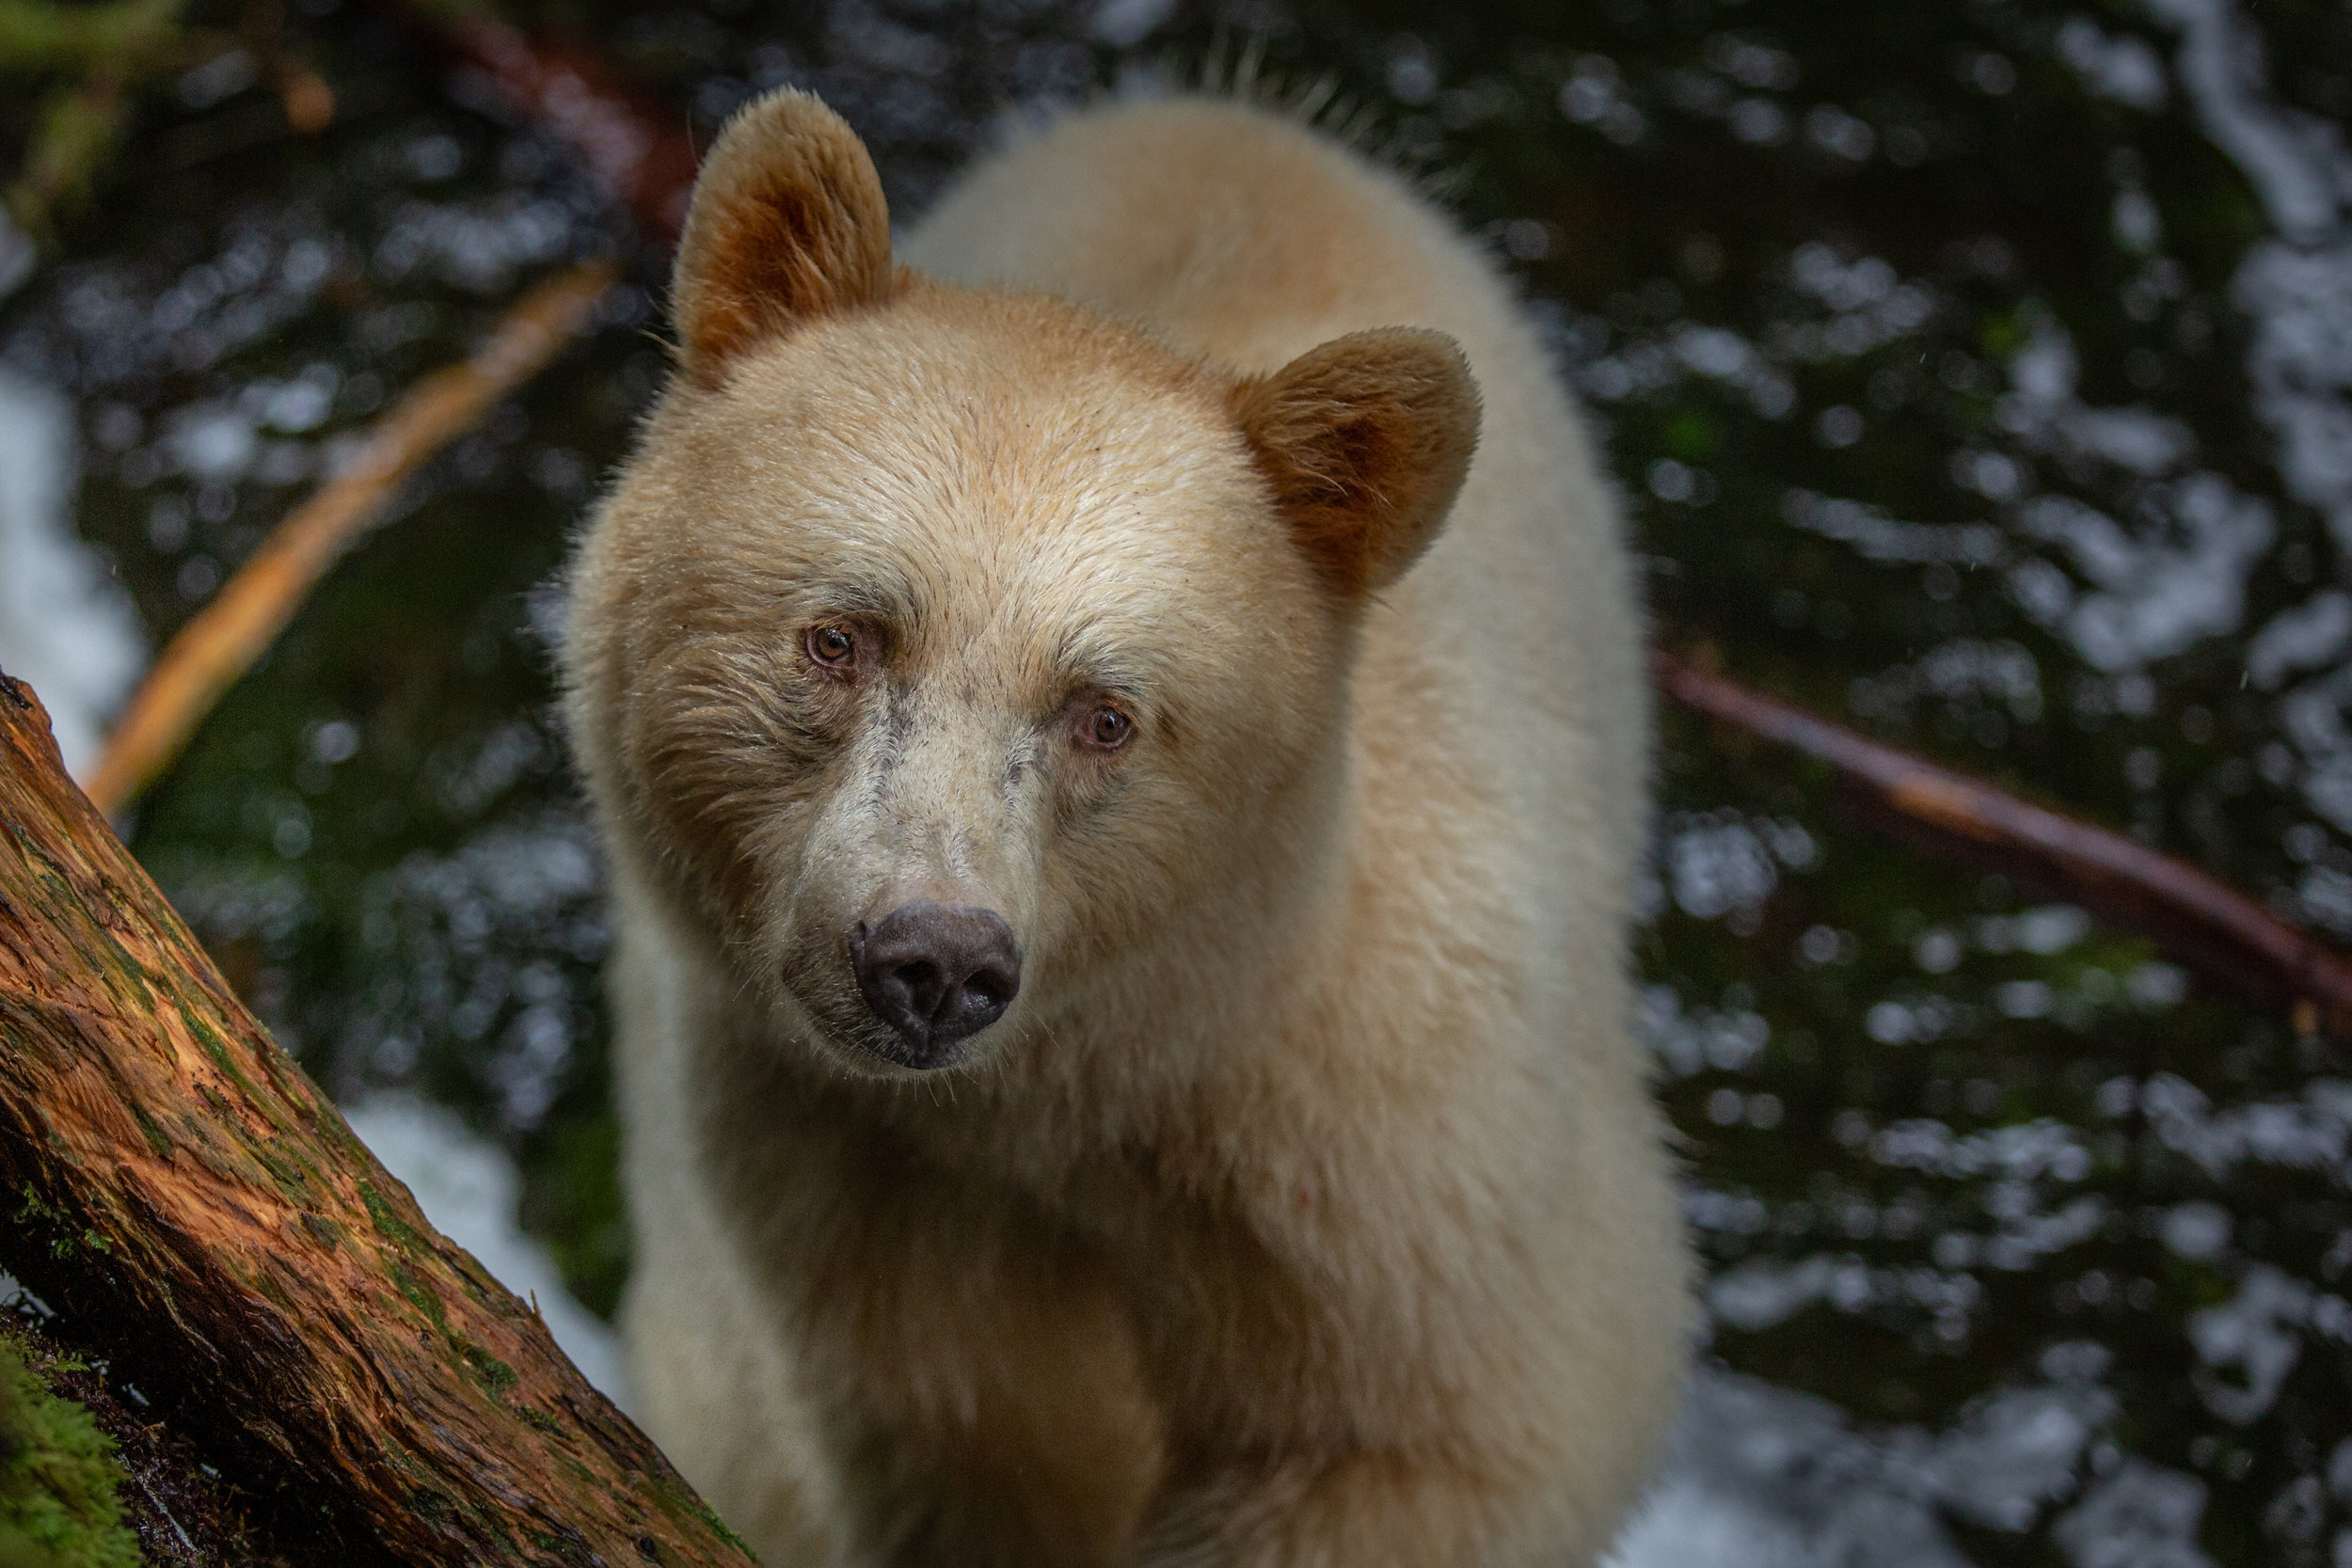 The most intense, yet precious bear encounter I've ever had. Subscribe to Wild Stories hear the full story.